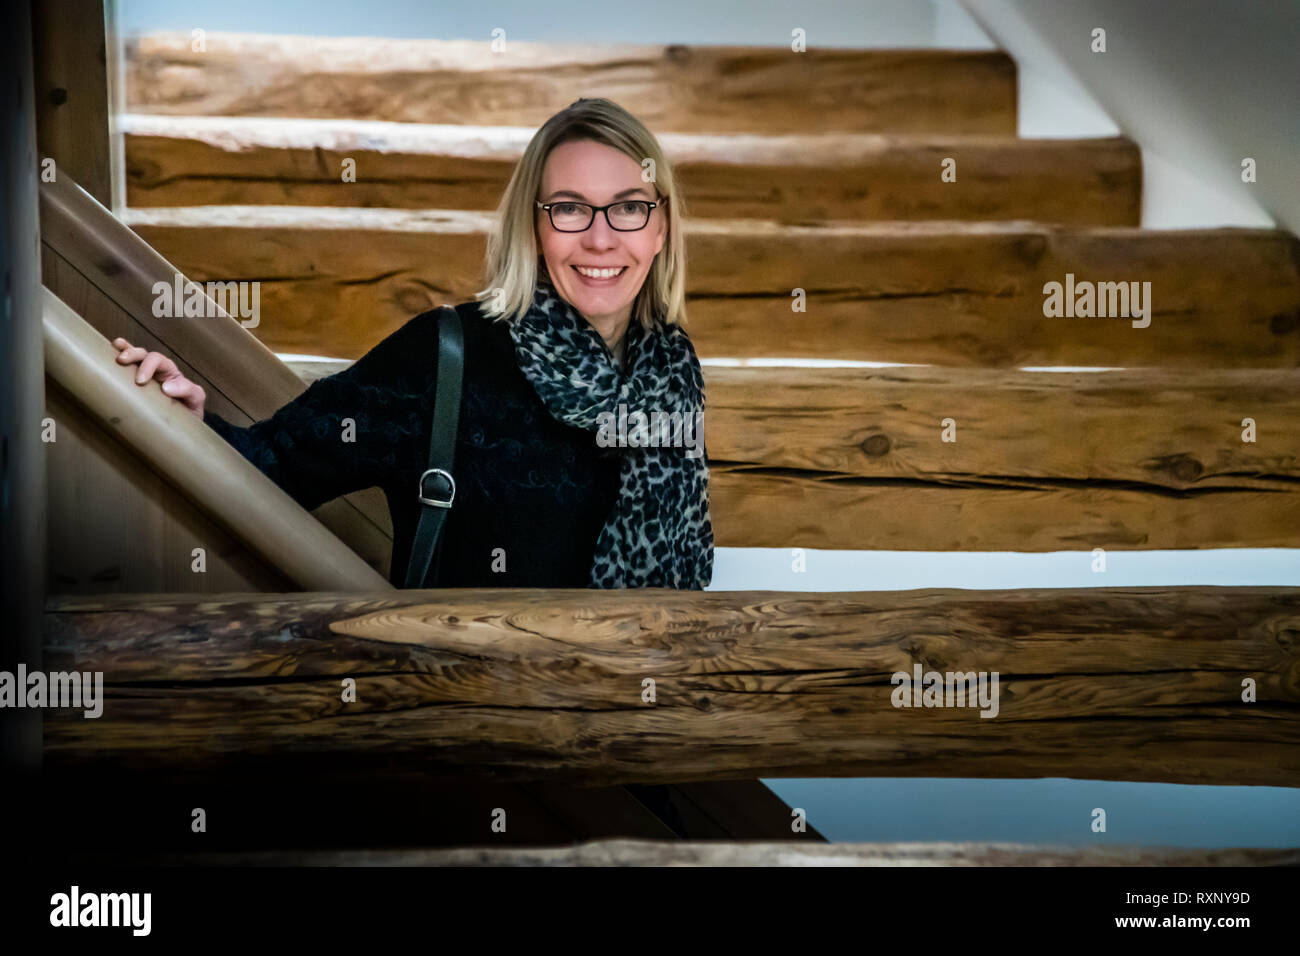 Angela Berg in the middle of the woodwork. In many rooms, the old wooden beams are exposed, set in contrast to modern furniture. Travel journalist Angela Berg at Hotel Kavaliershaus in Fincken, Germany Stock Photo